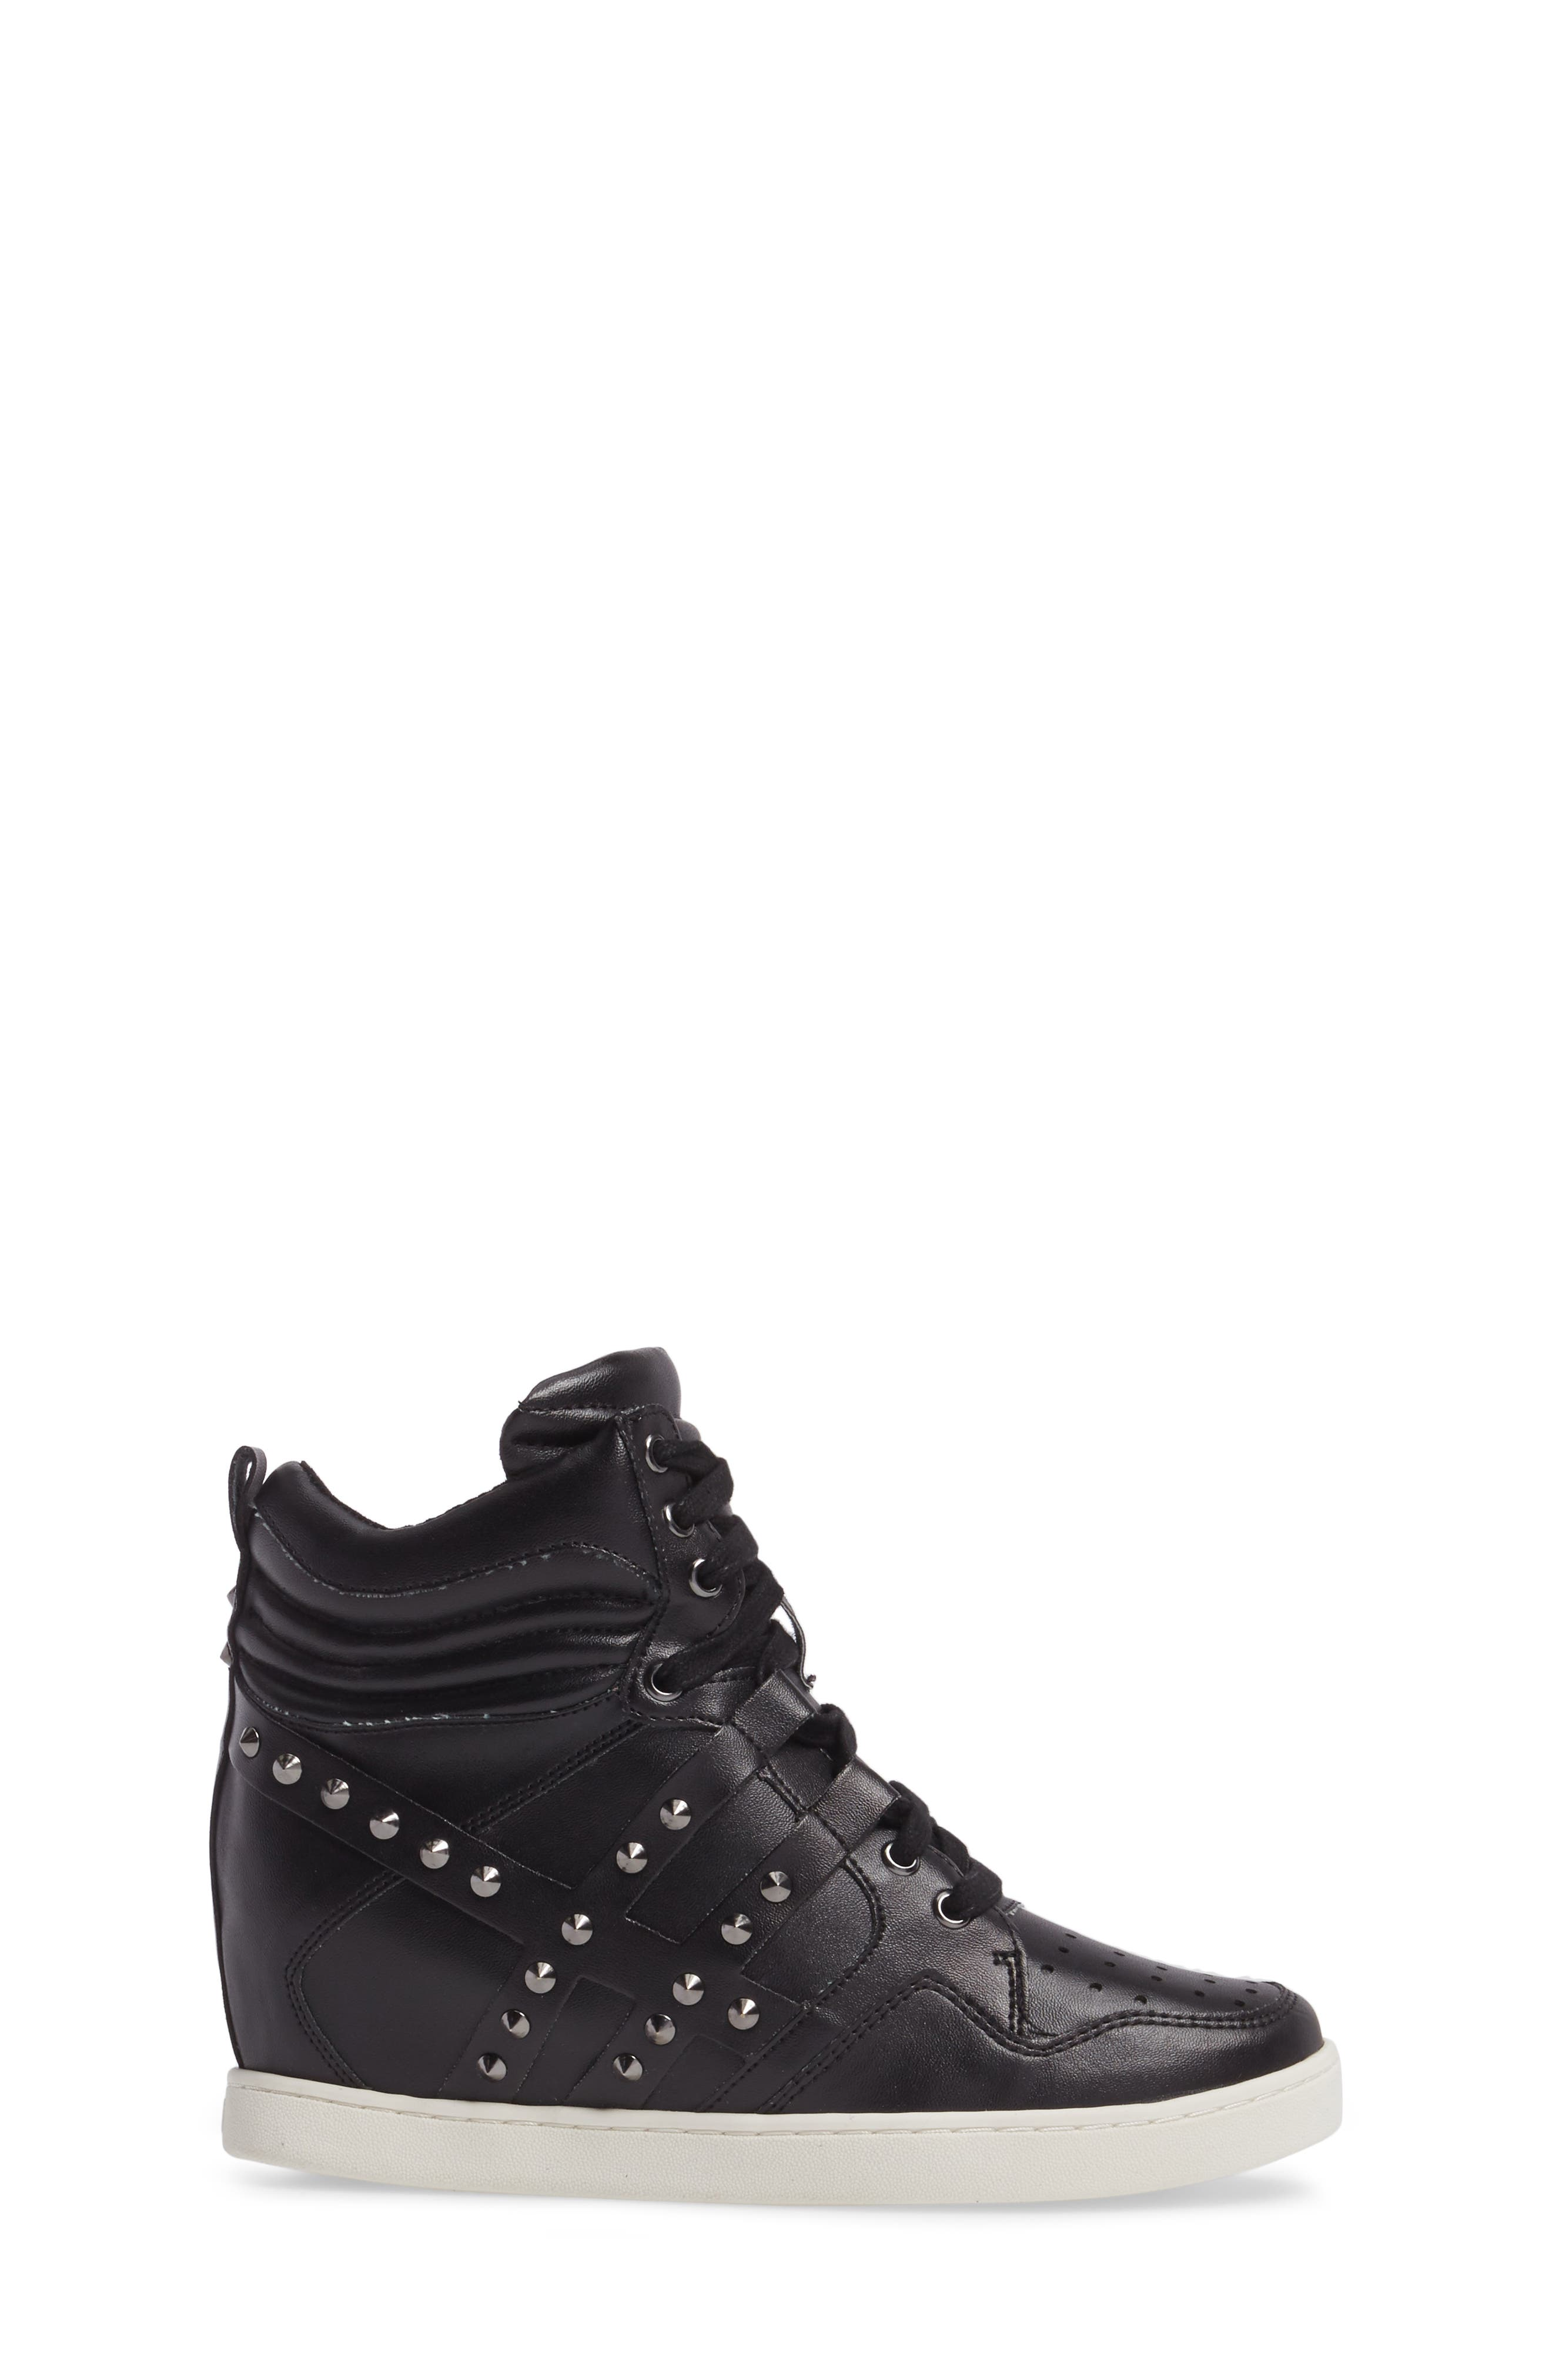 Boogie Chic Studded High Top Sneaker,                             Alternate thumbnail 3, color,                             001